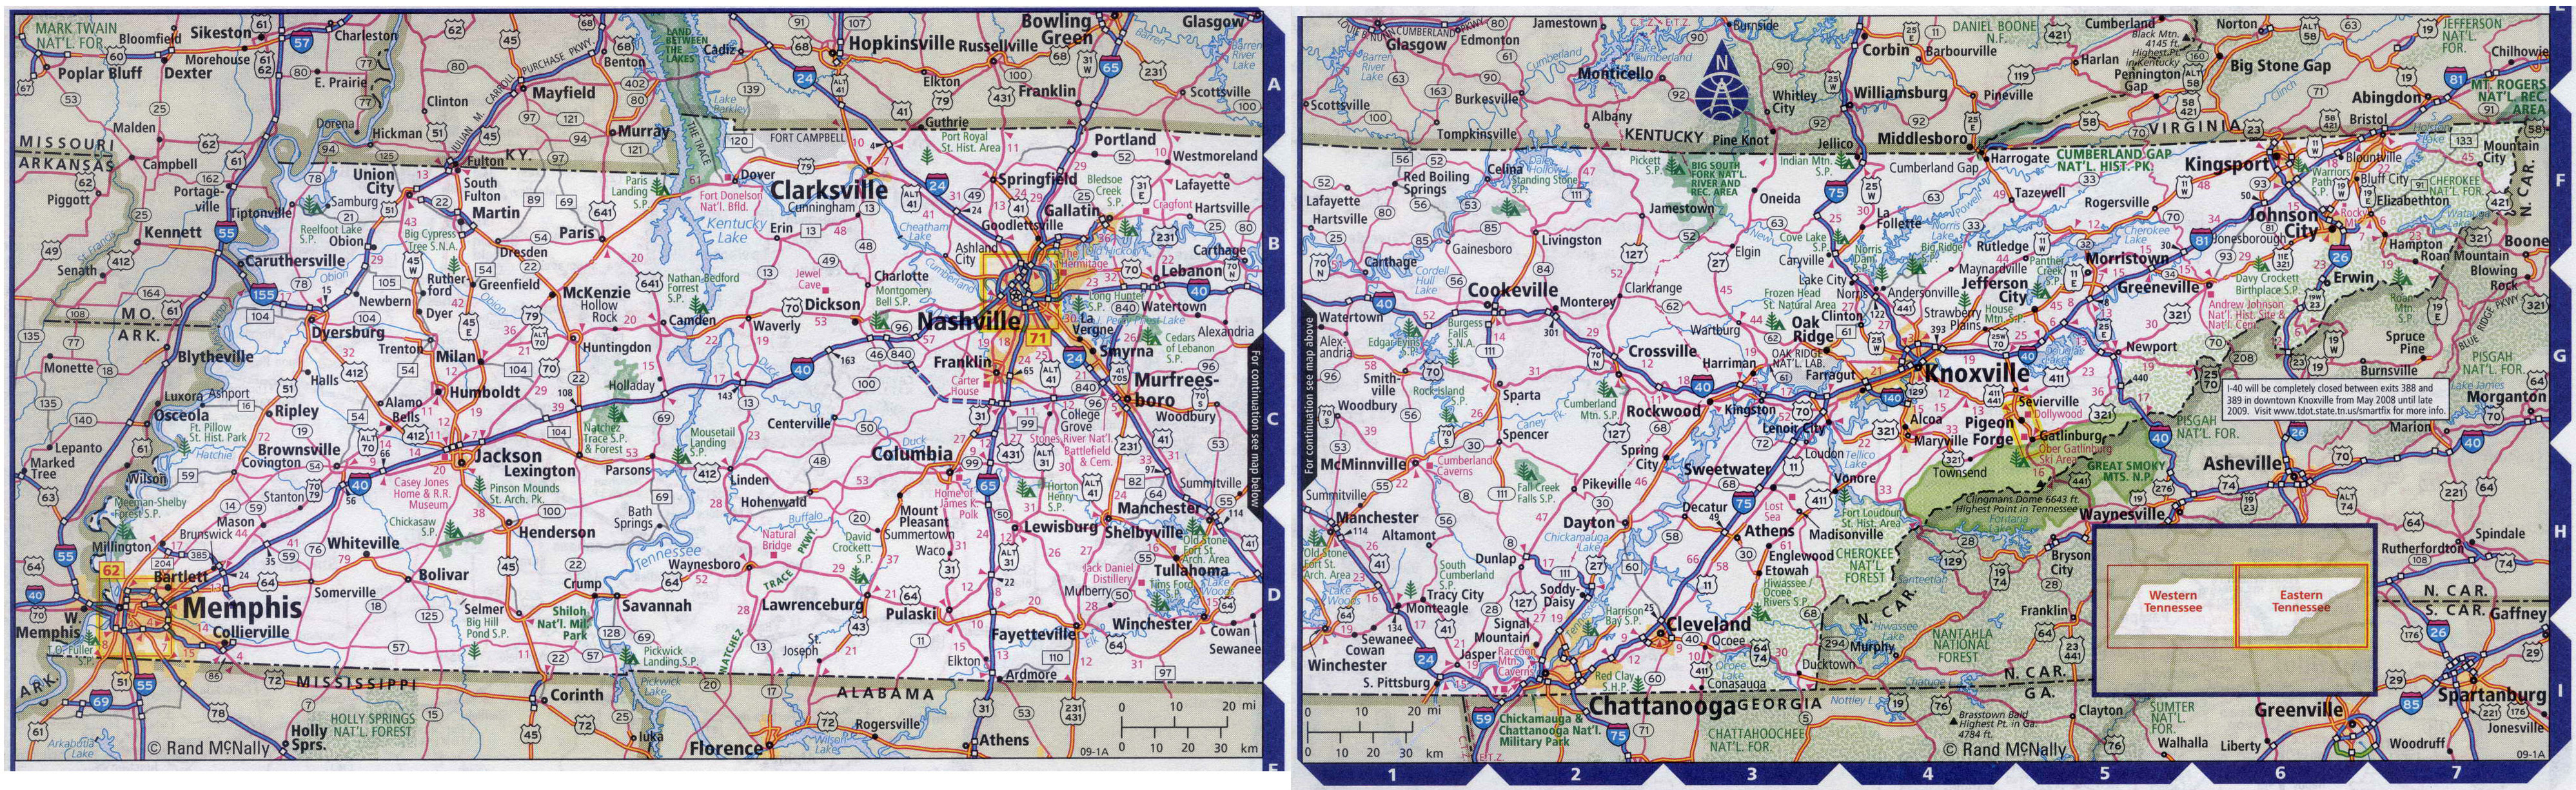 Large Detailed Roads And Highways Map Of Tennessee State